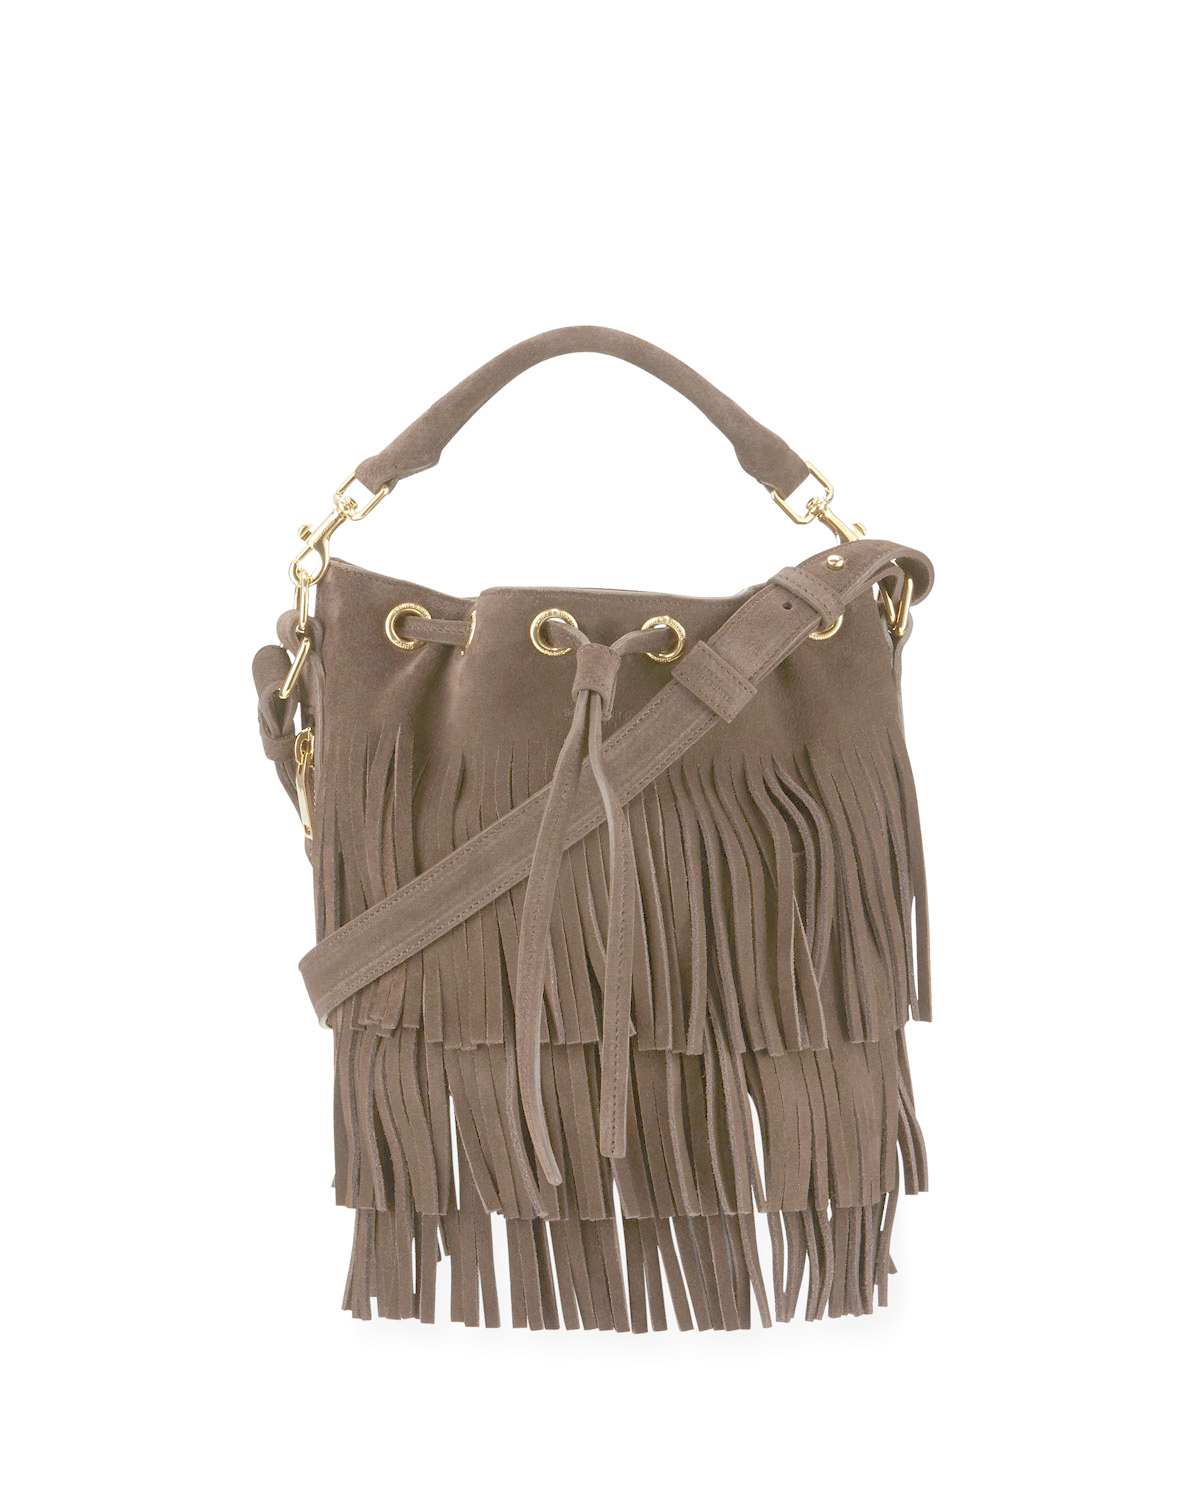 c826d27b334b Gallery. Previously sold at  Bergdorf Goodman · Women s Fringed Bags  Women s Saint Laurent ...